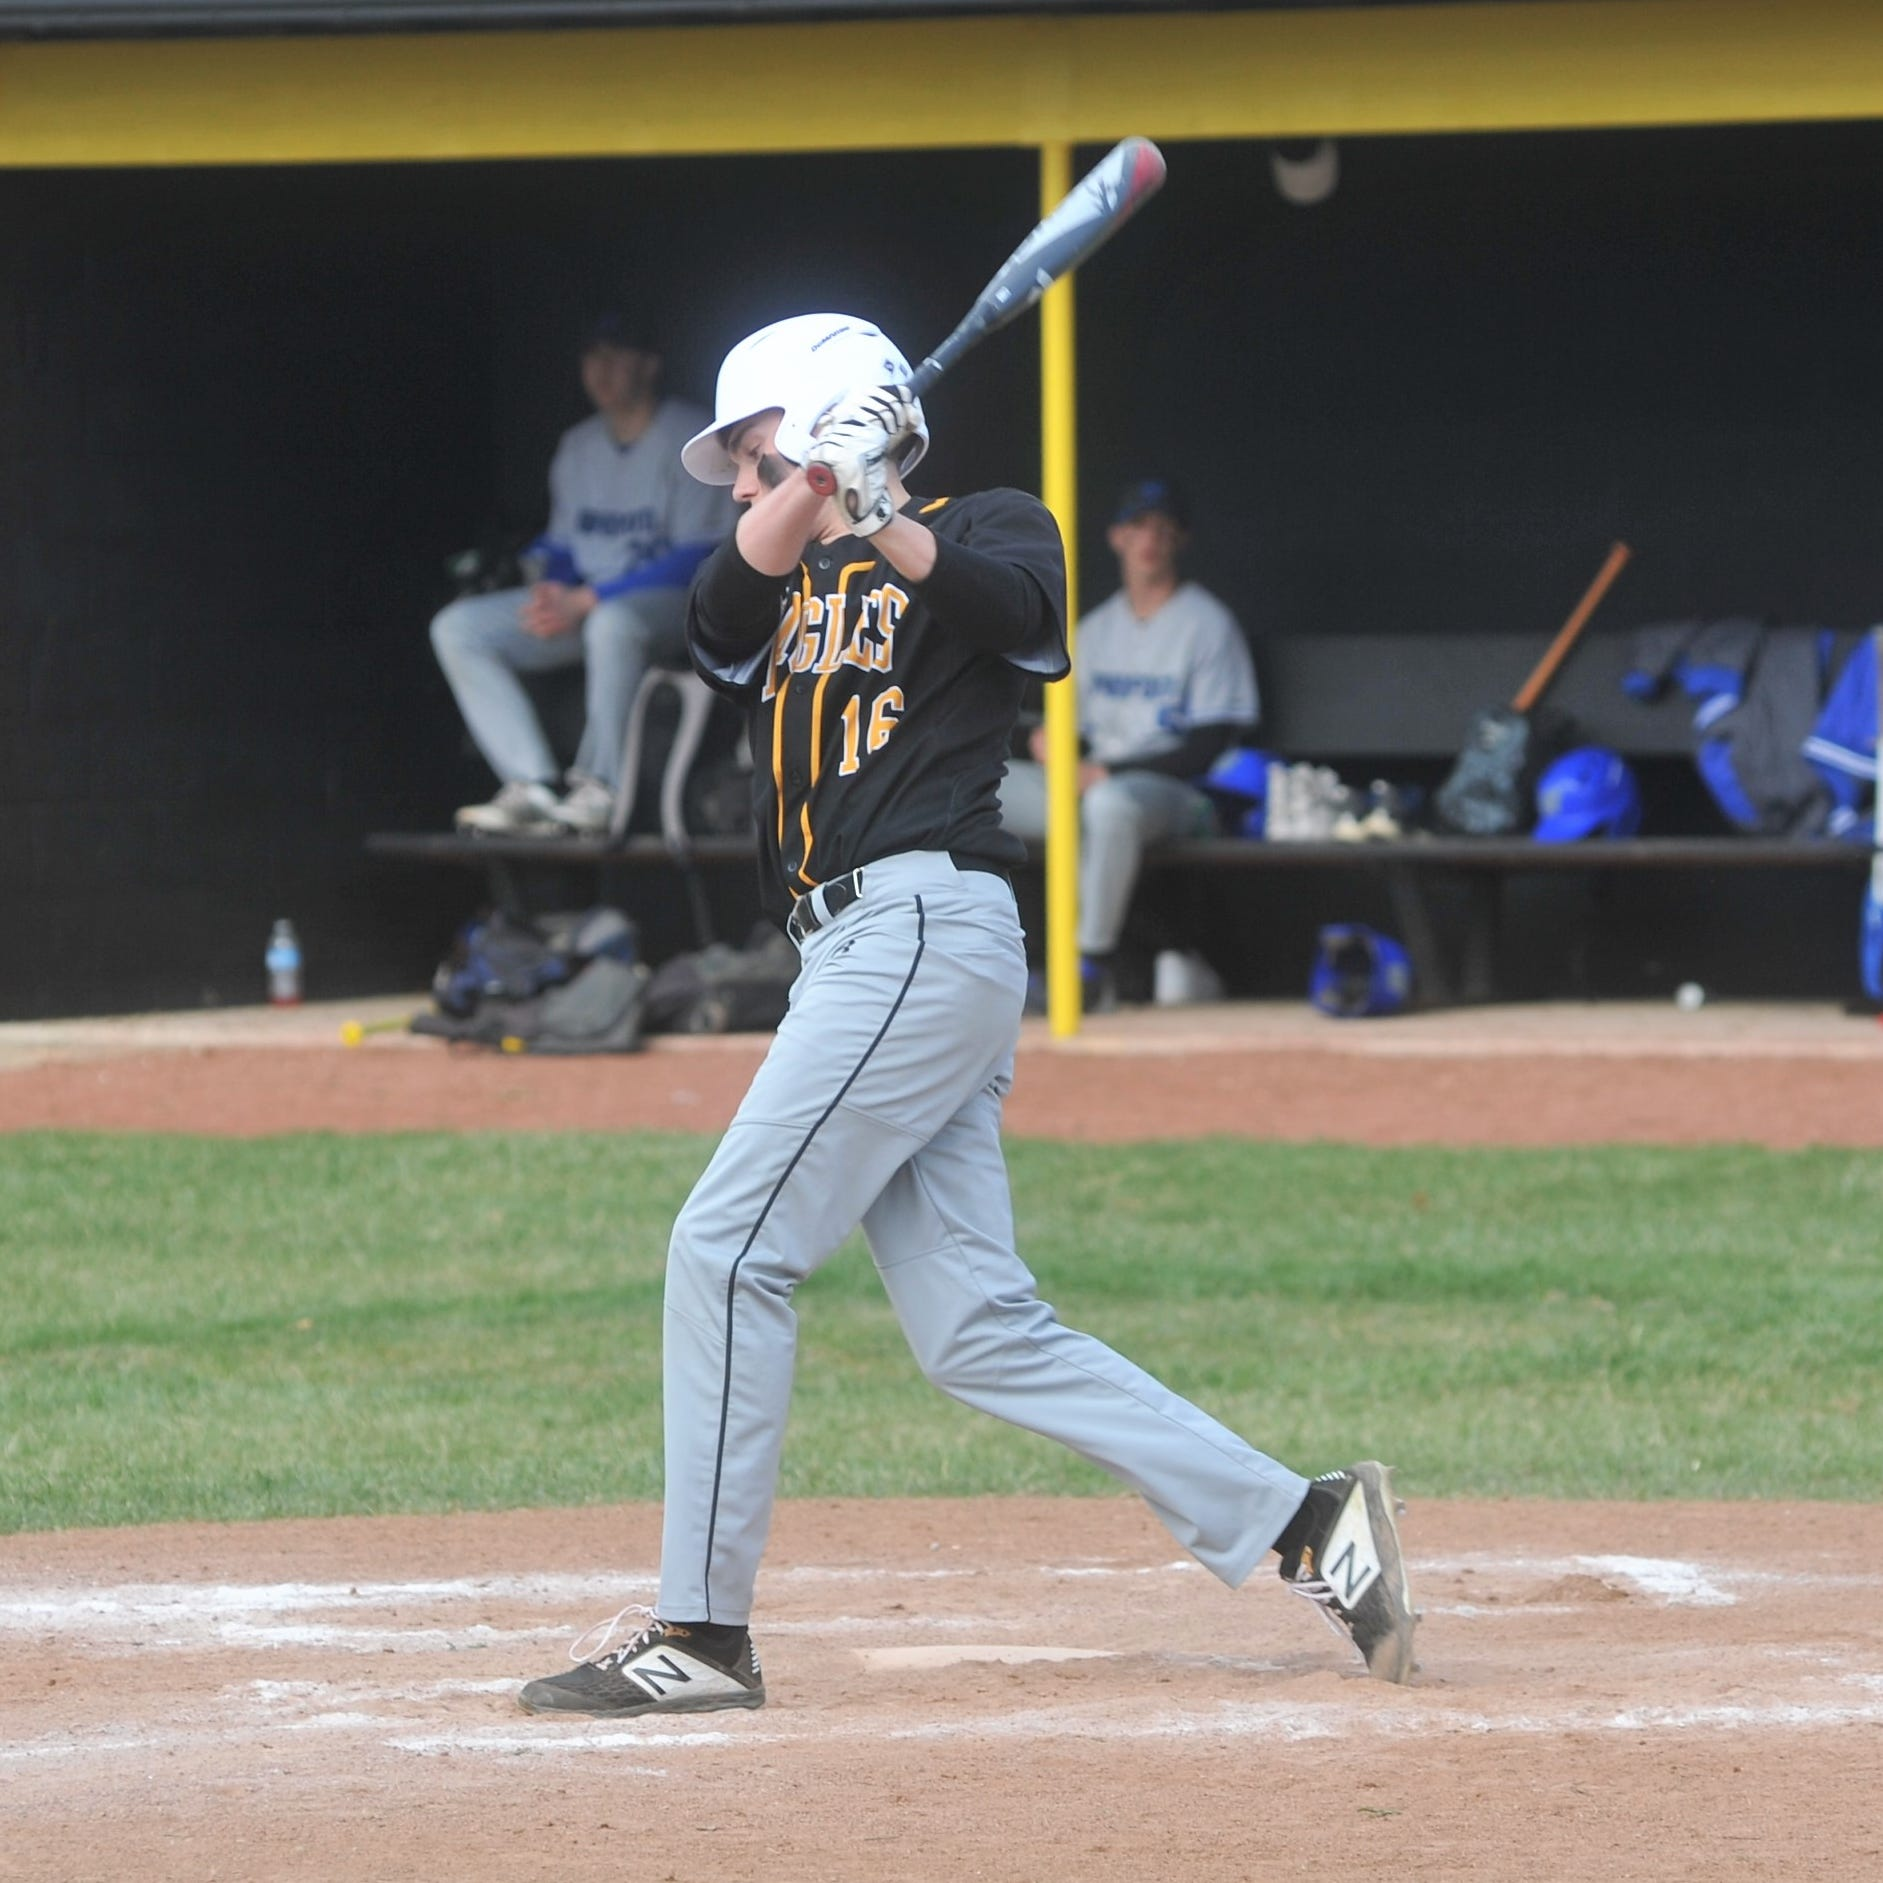 Fantastic fourth: Eagles use one big inning to beat rival Wynford